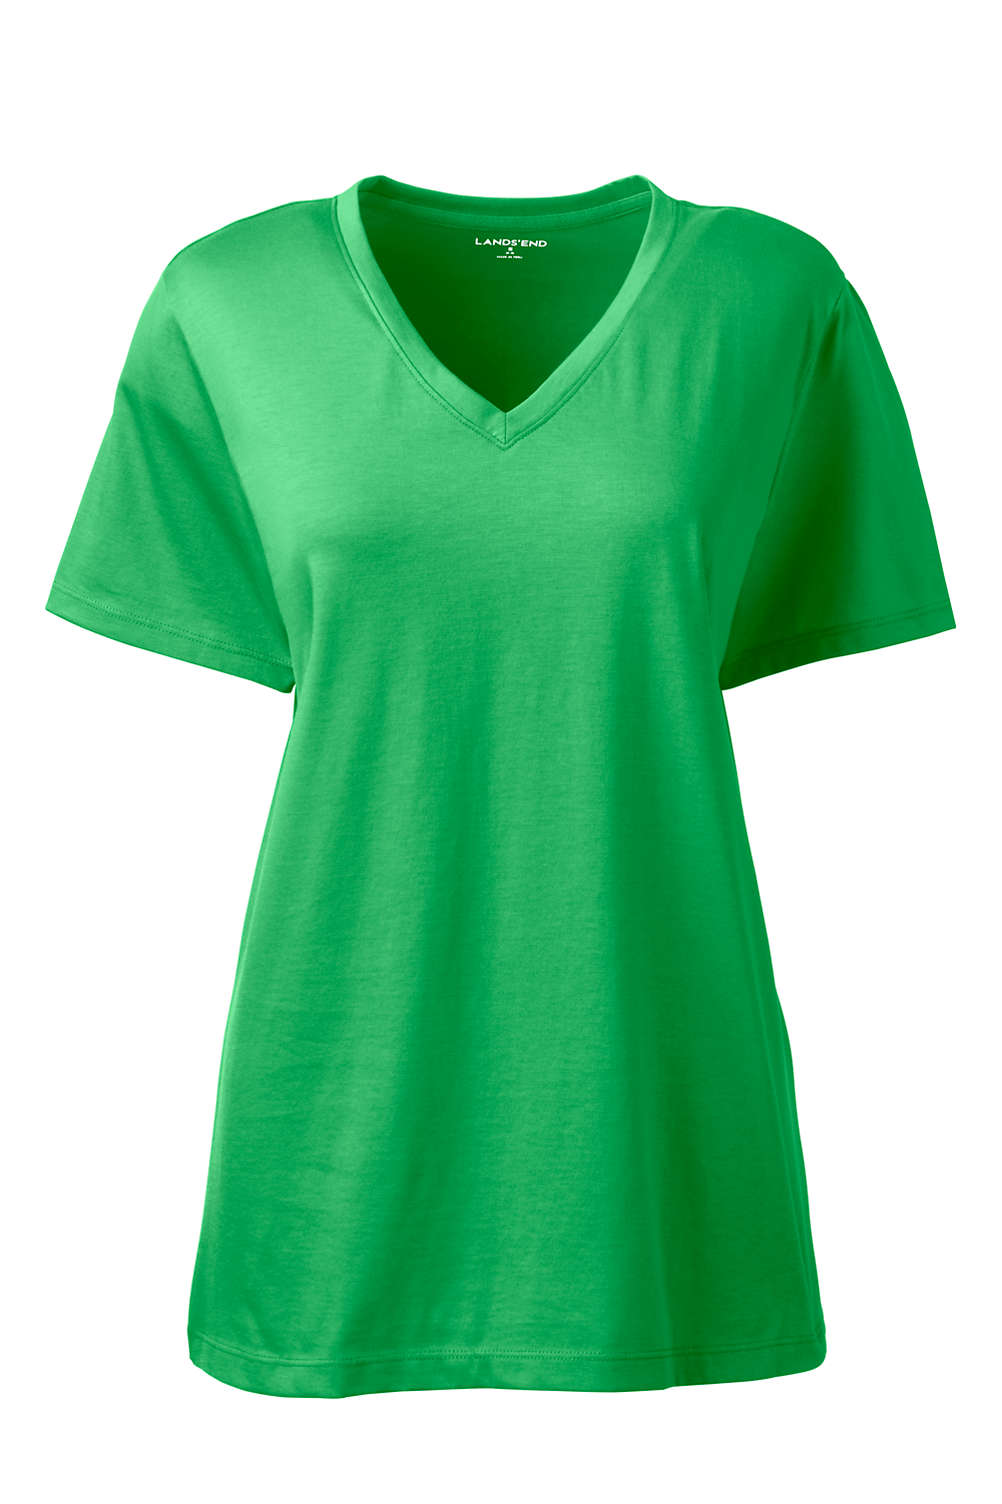 a22af6cd629d Women's Relaxed Supima Cotton Short Sleeve V-Neck T-Shirt from Lands ...